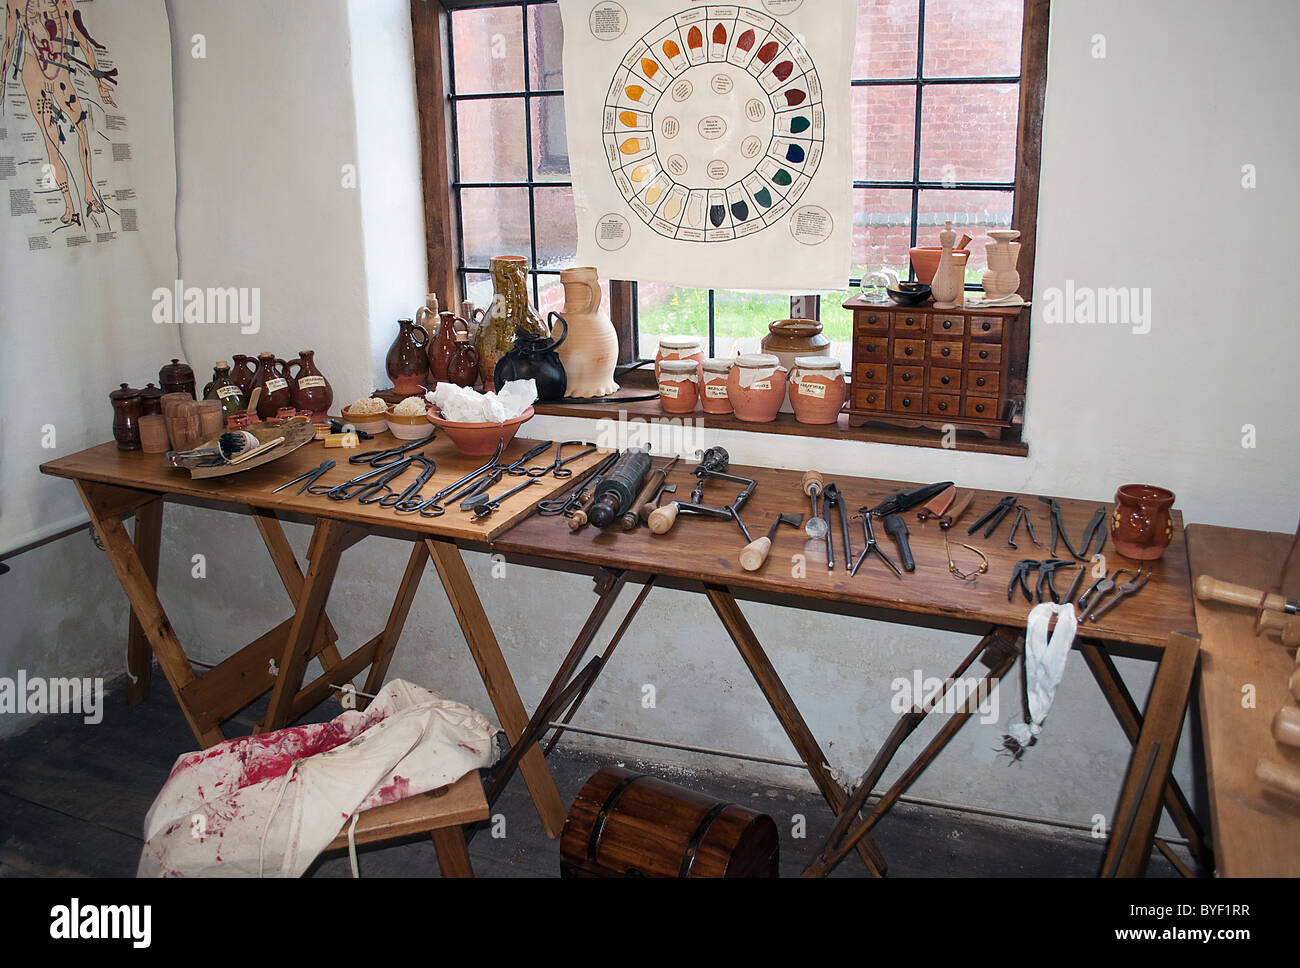 Medieval Surgery Tool Display At Haden Hill House Old West Midlands